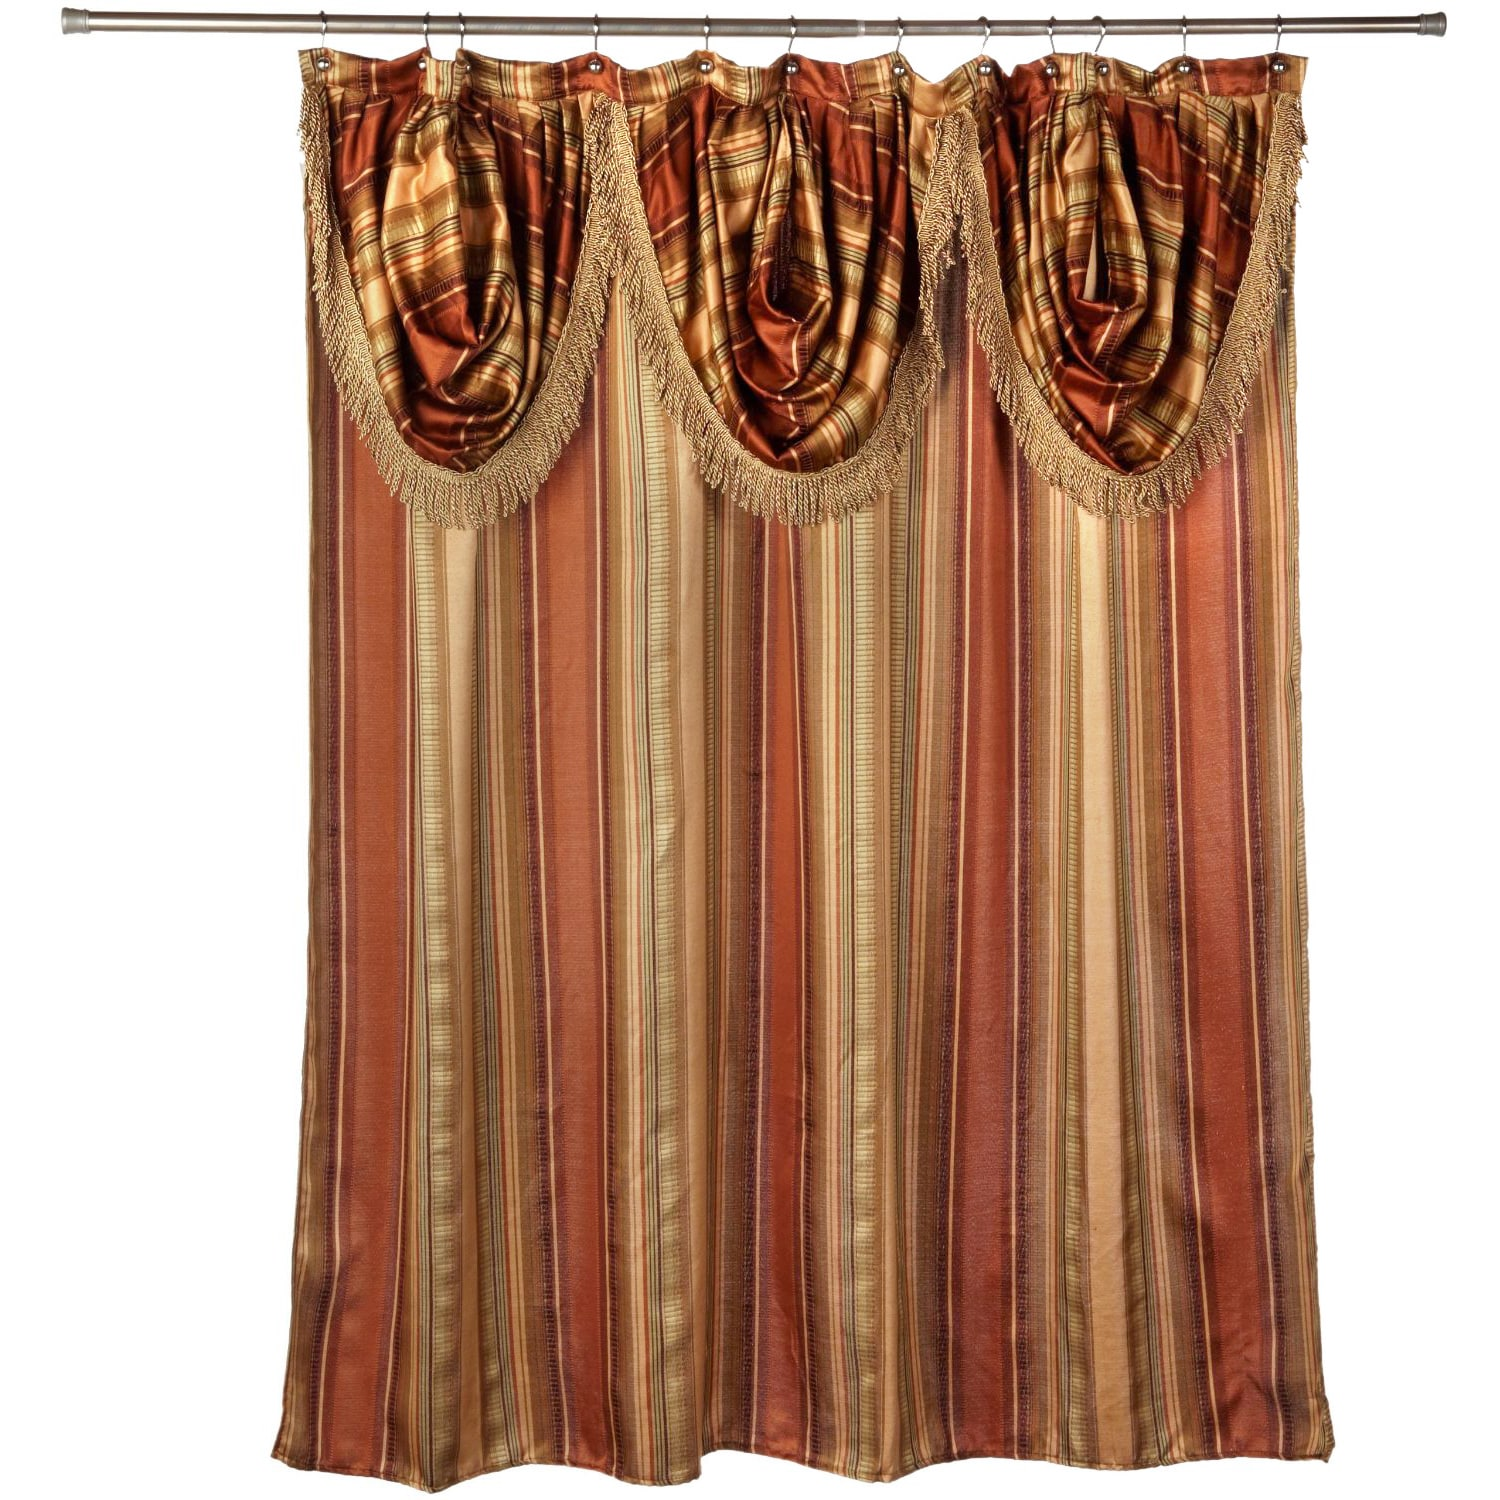 ultra modern shower curtain with valance and hooks set or separates multi color